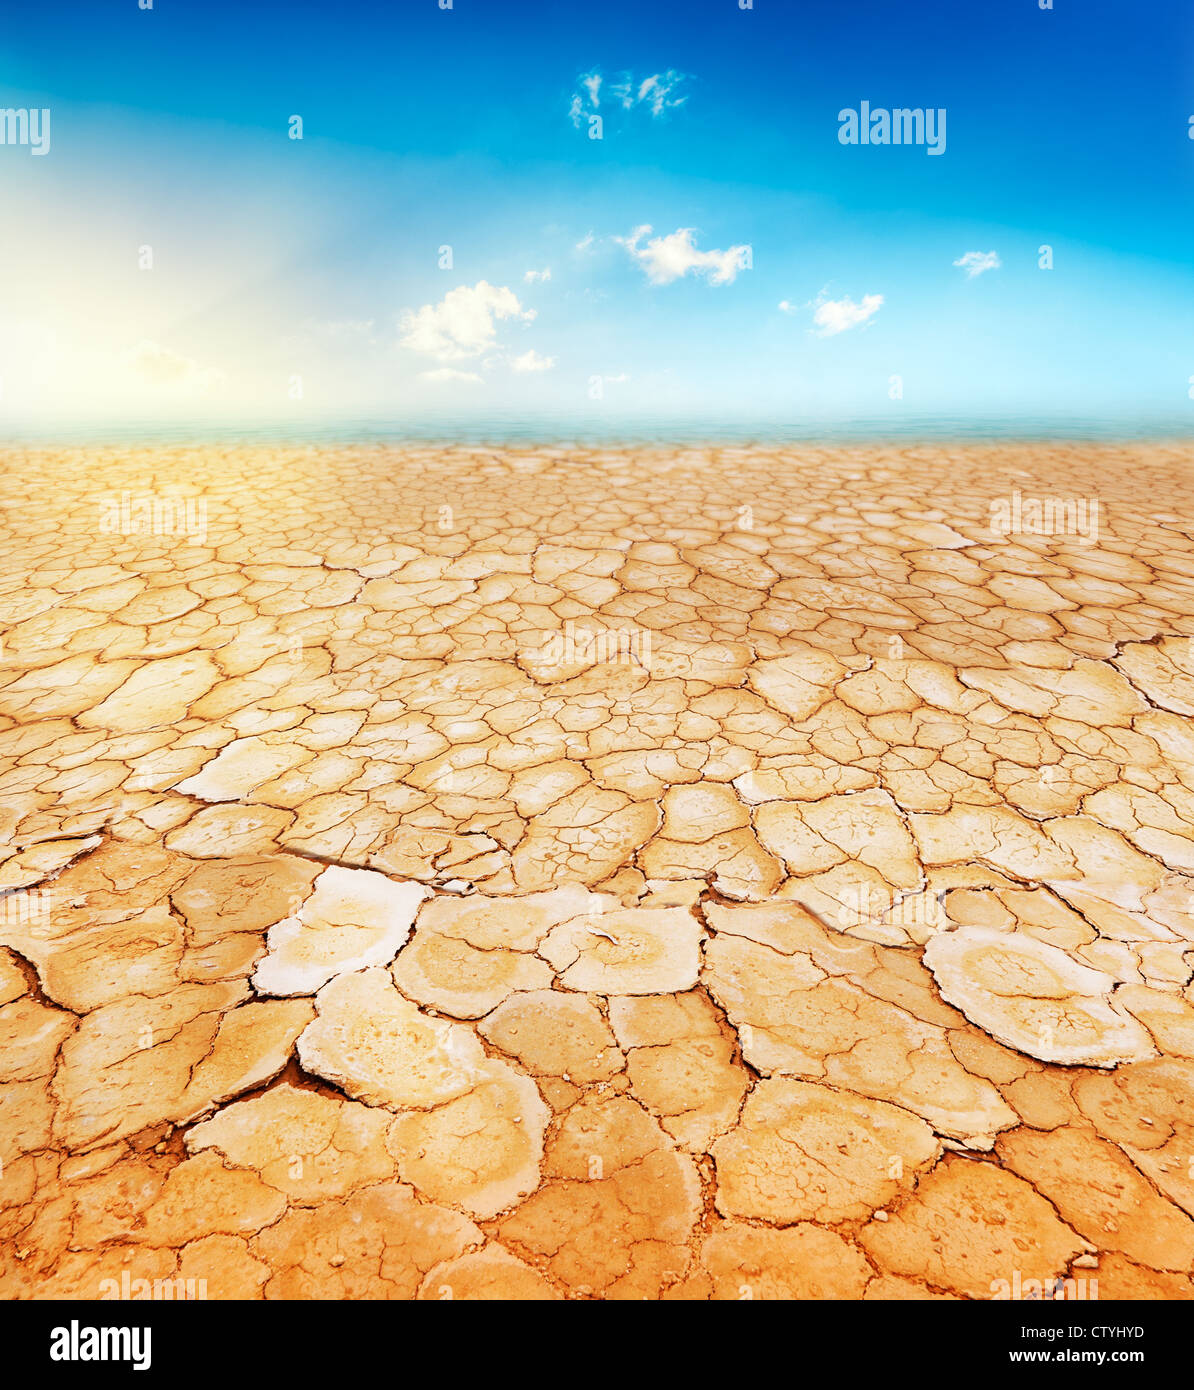 Dry, parched, cracked earth - Stock Image